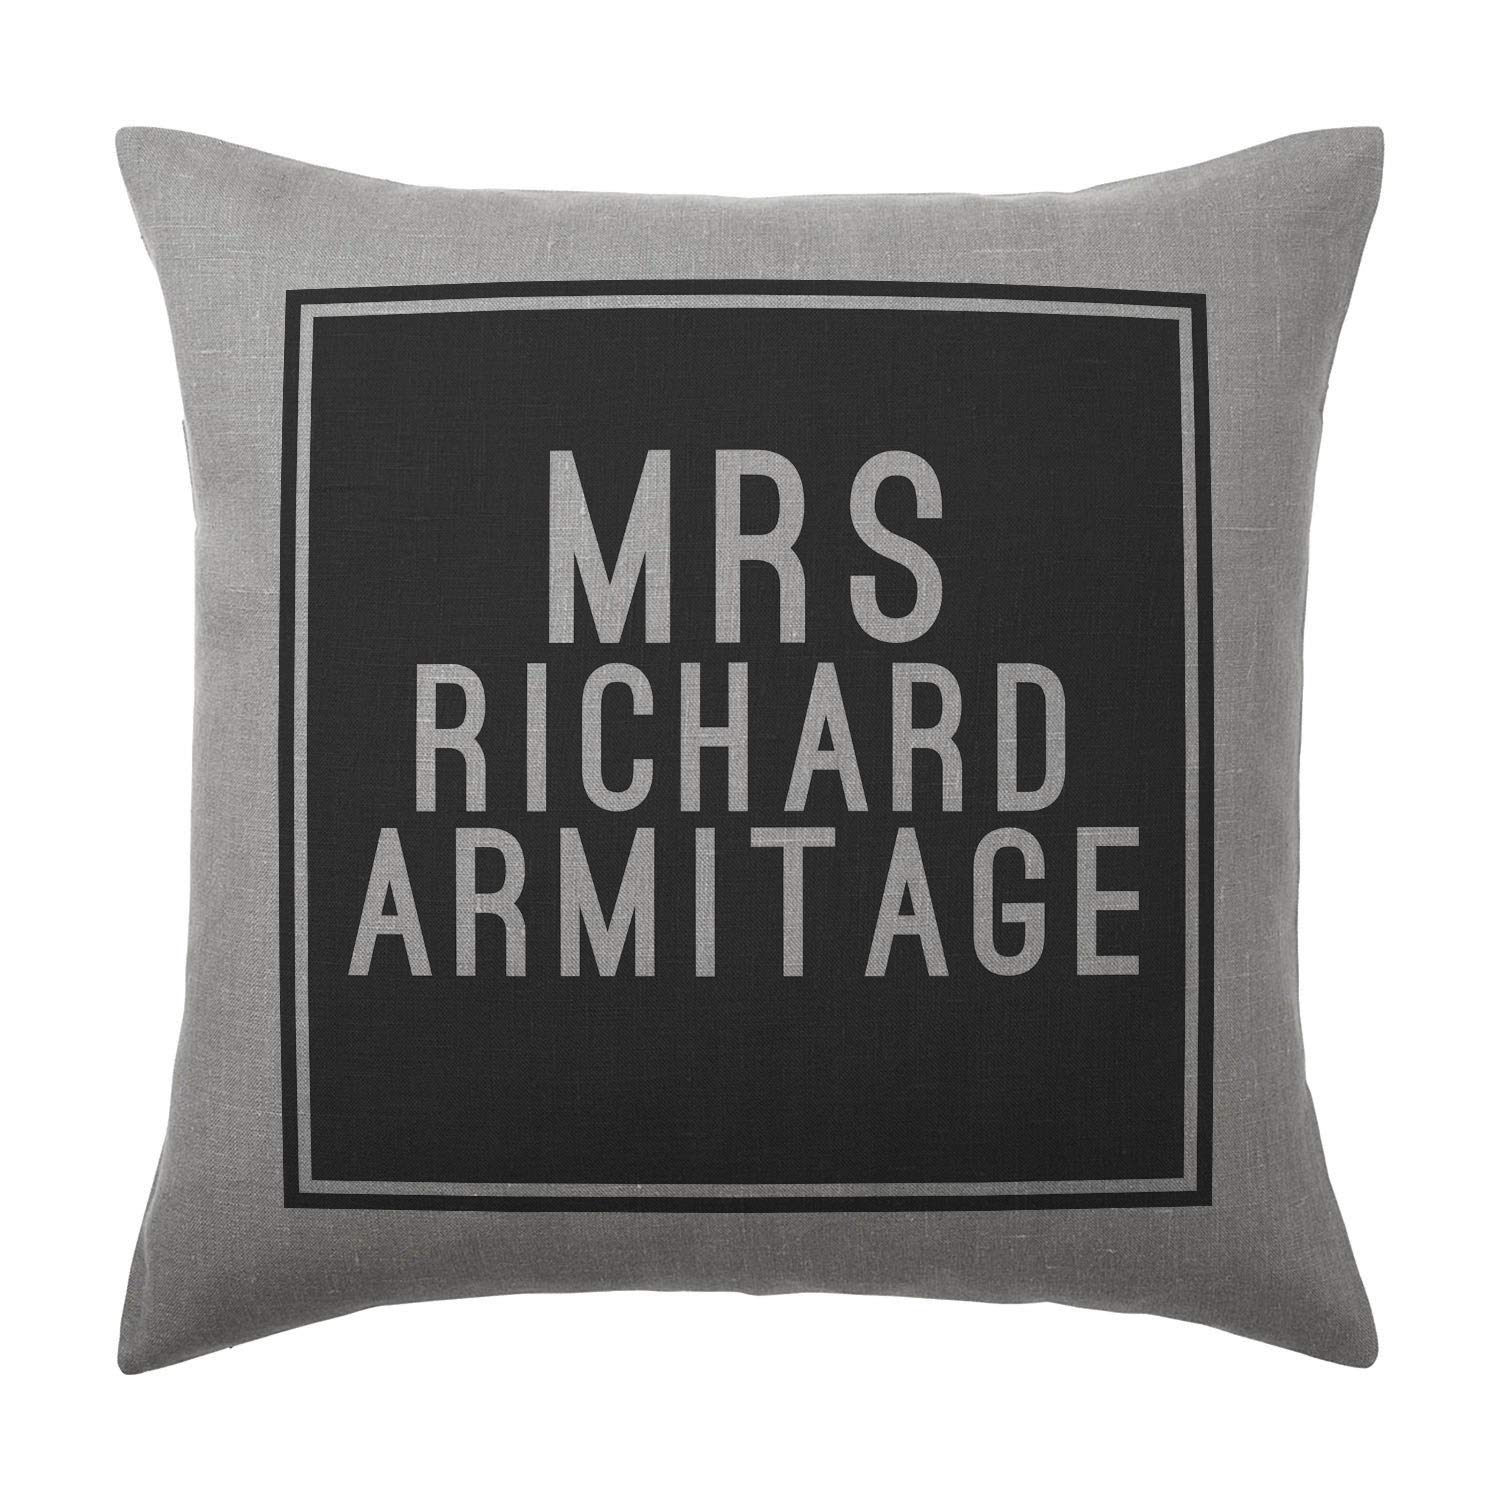 Grey 40x40cm Stocking Fillers Richard Armitage Cushion Pillow Cover and filling pad Available with or without filling pad 100/% Cotton